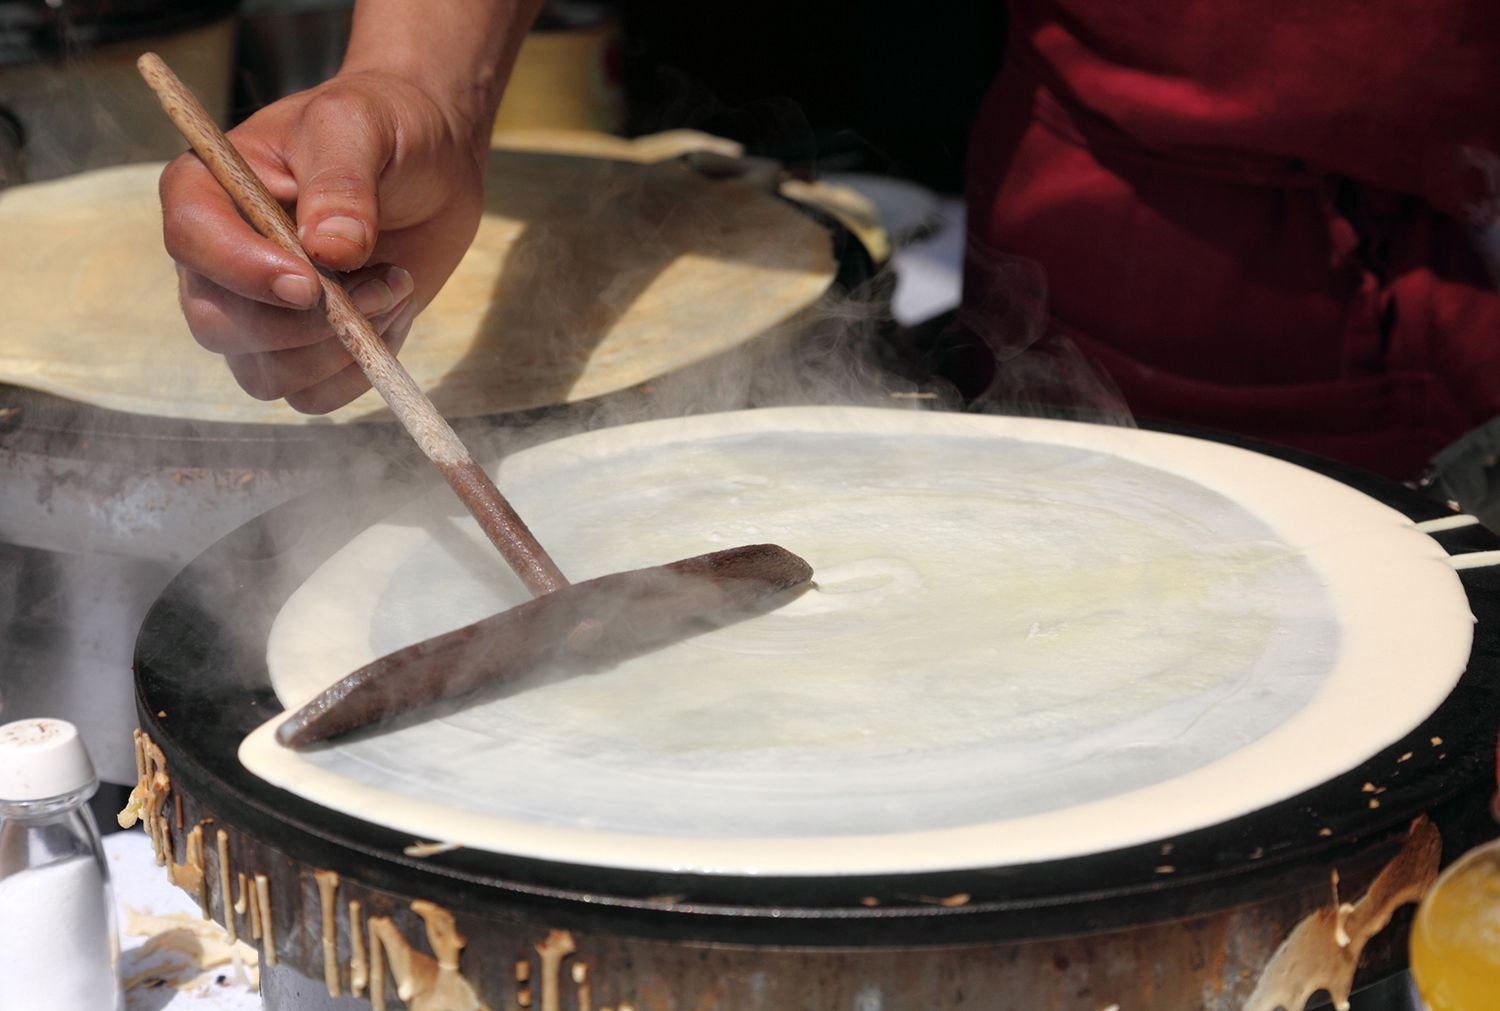 Making Crepes on a Steaming Hot Griddle